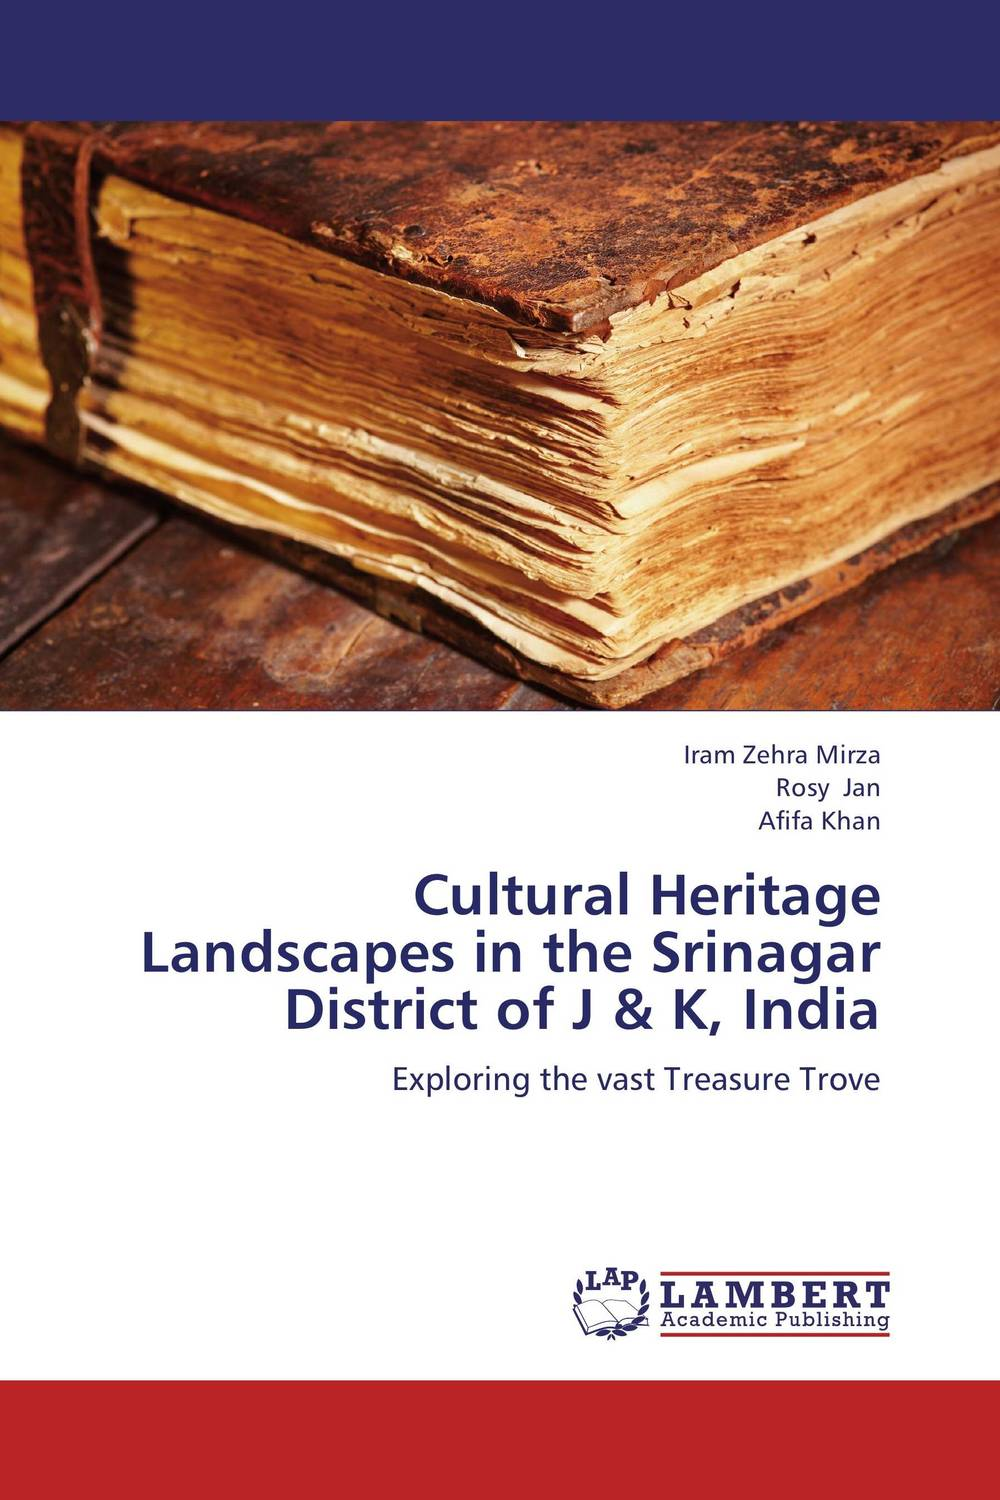 Cultural Heritage Landscapes in the Srinagar District of J & K, India himabm 1 pcs 100